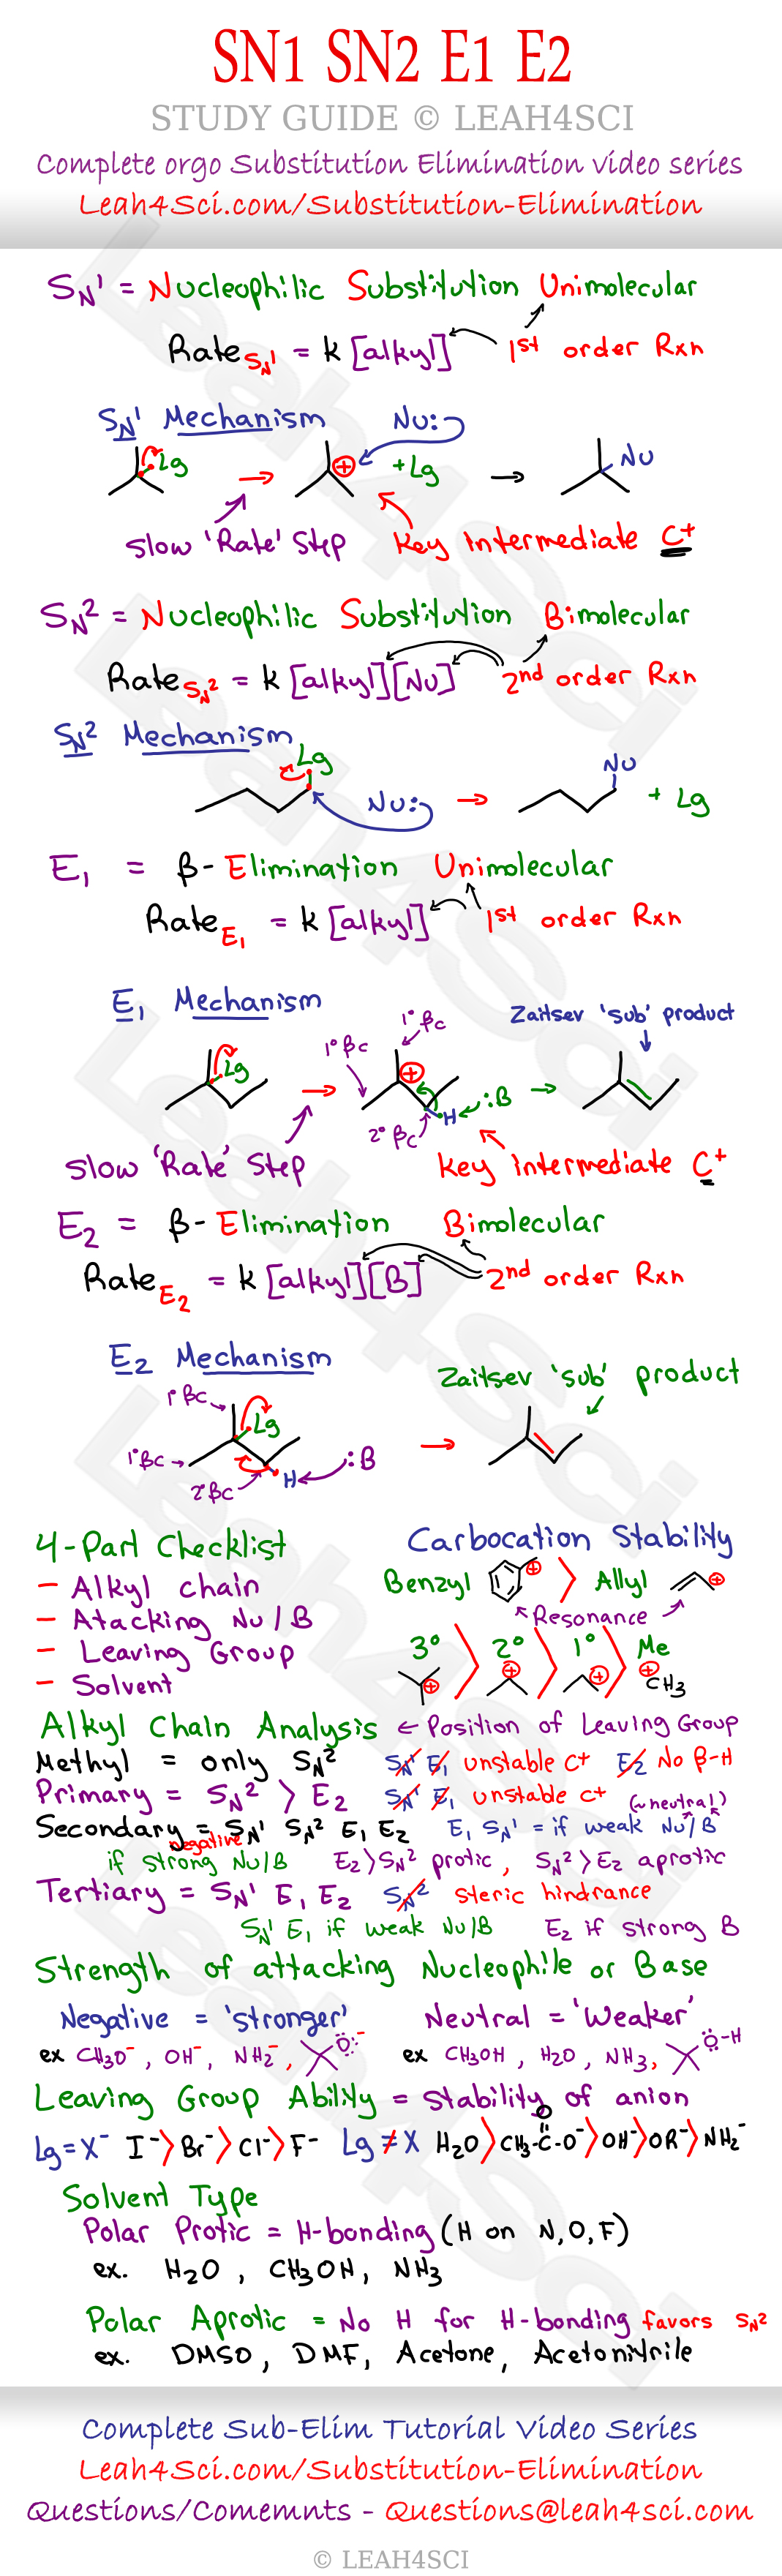 Sn1 Sn2 E1 E2 Organic Chemistry Study Guide Cheat Sheet